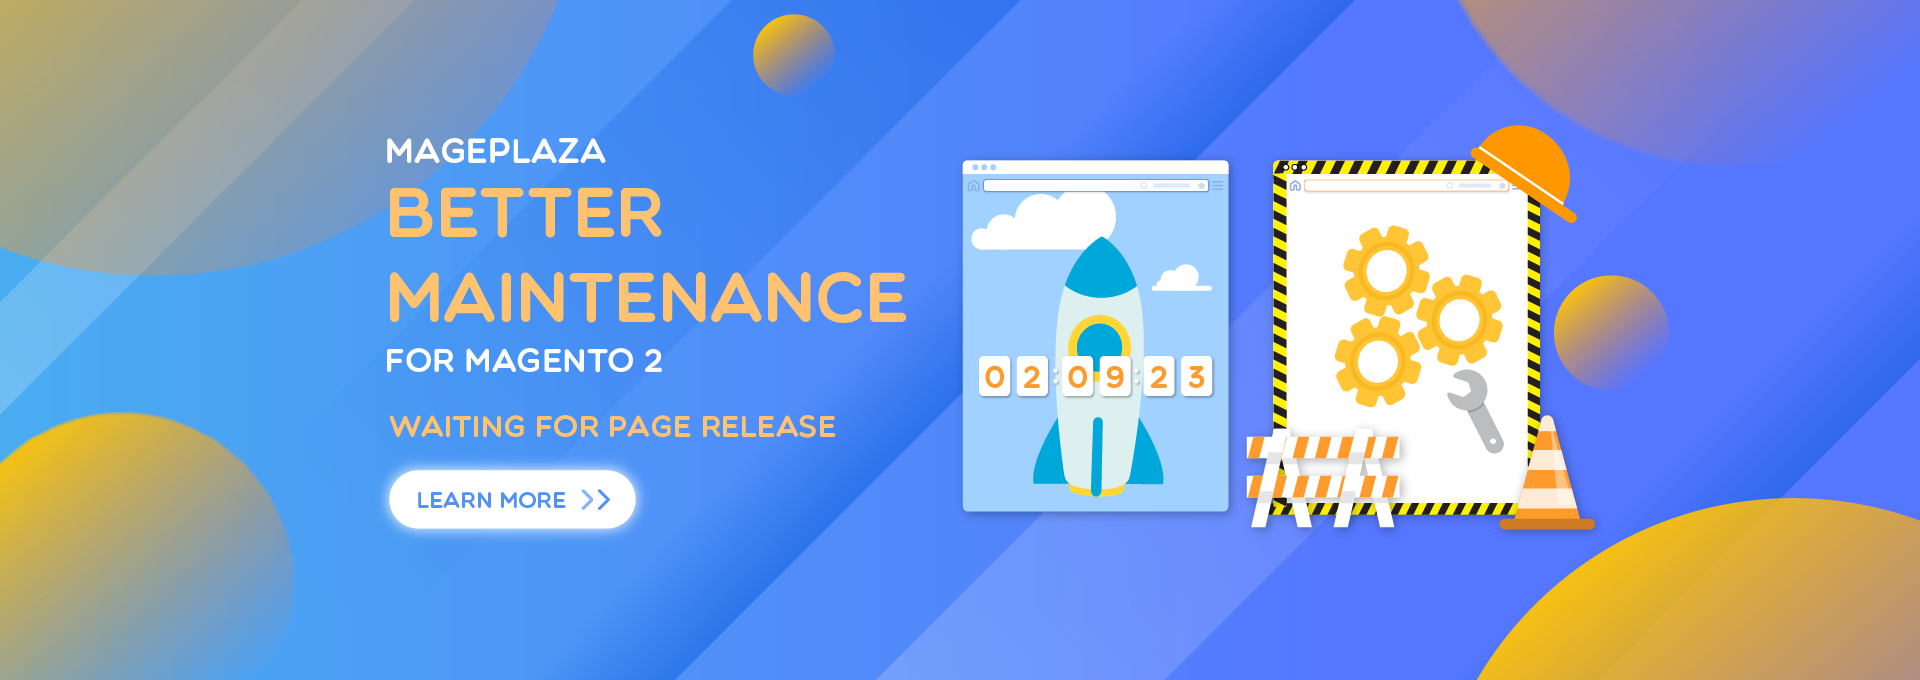 magento 2 better maintenance